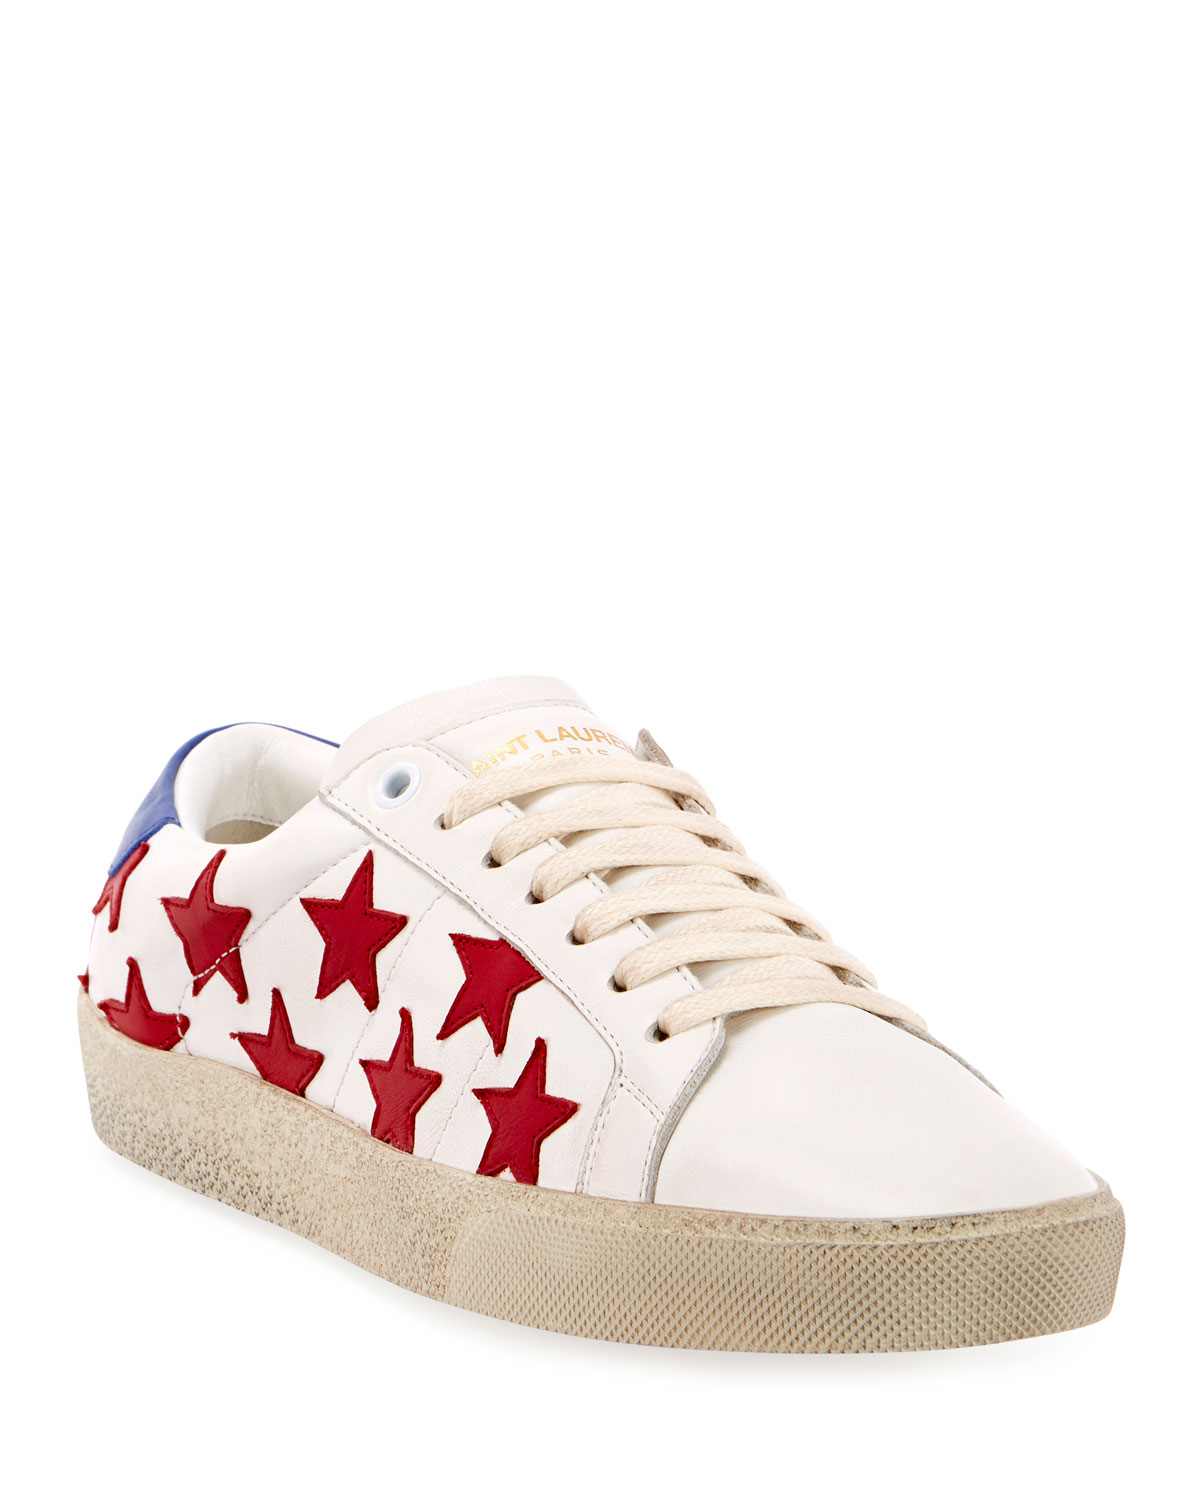 Court Classic Star-Print Sneakers